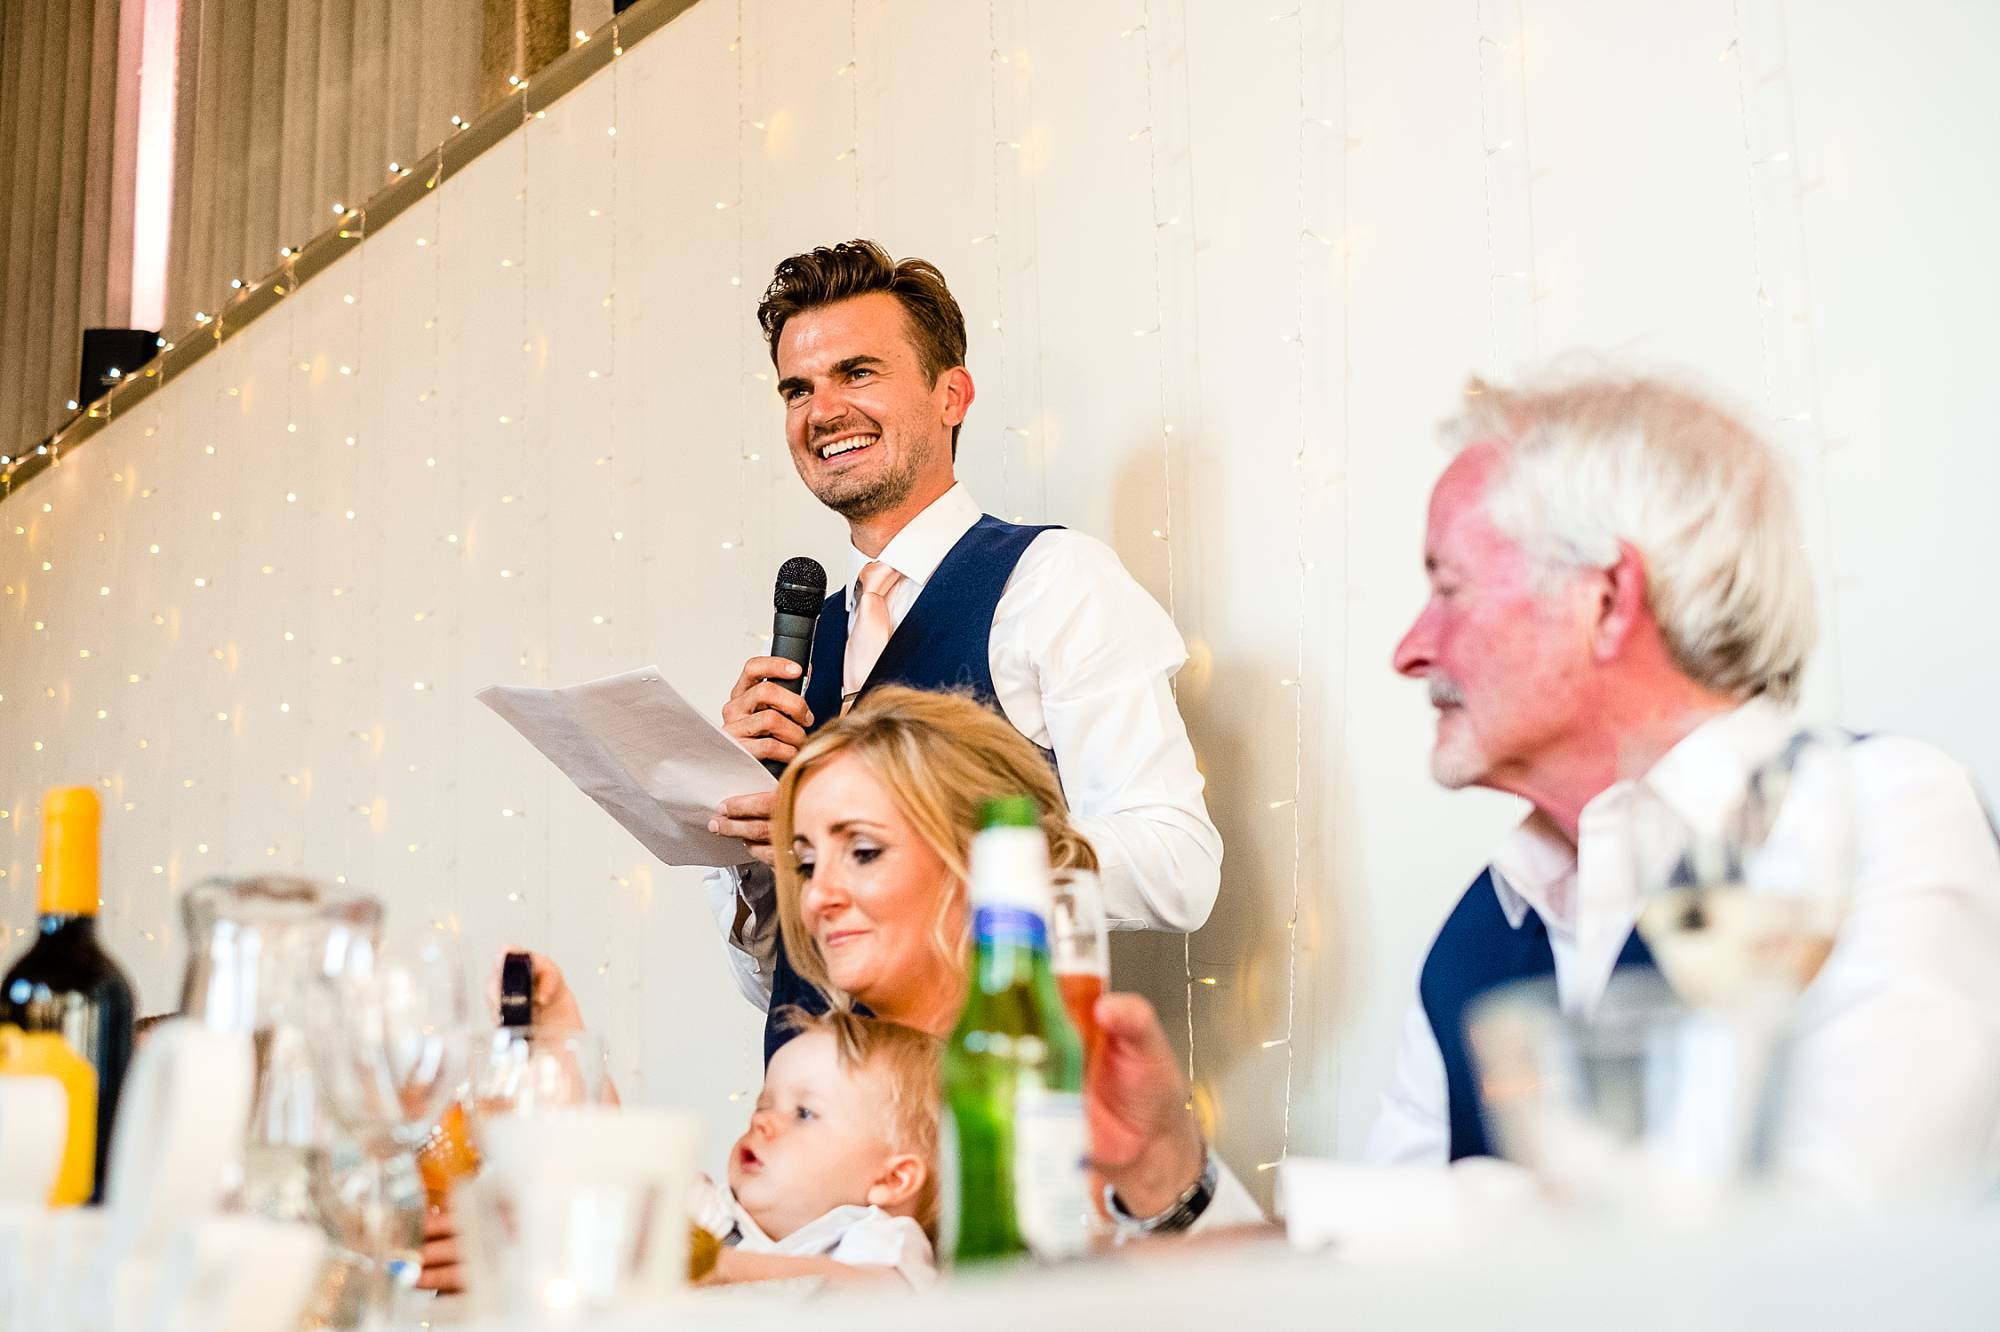 Houchins Essex Wedding Photographer_0070.jpg